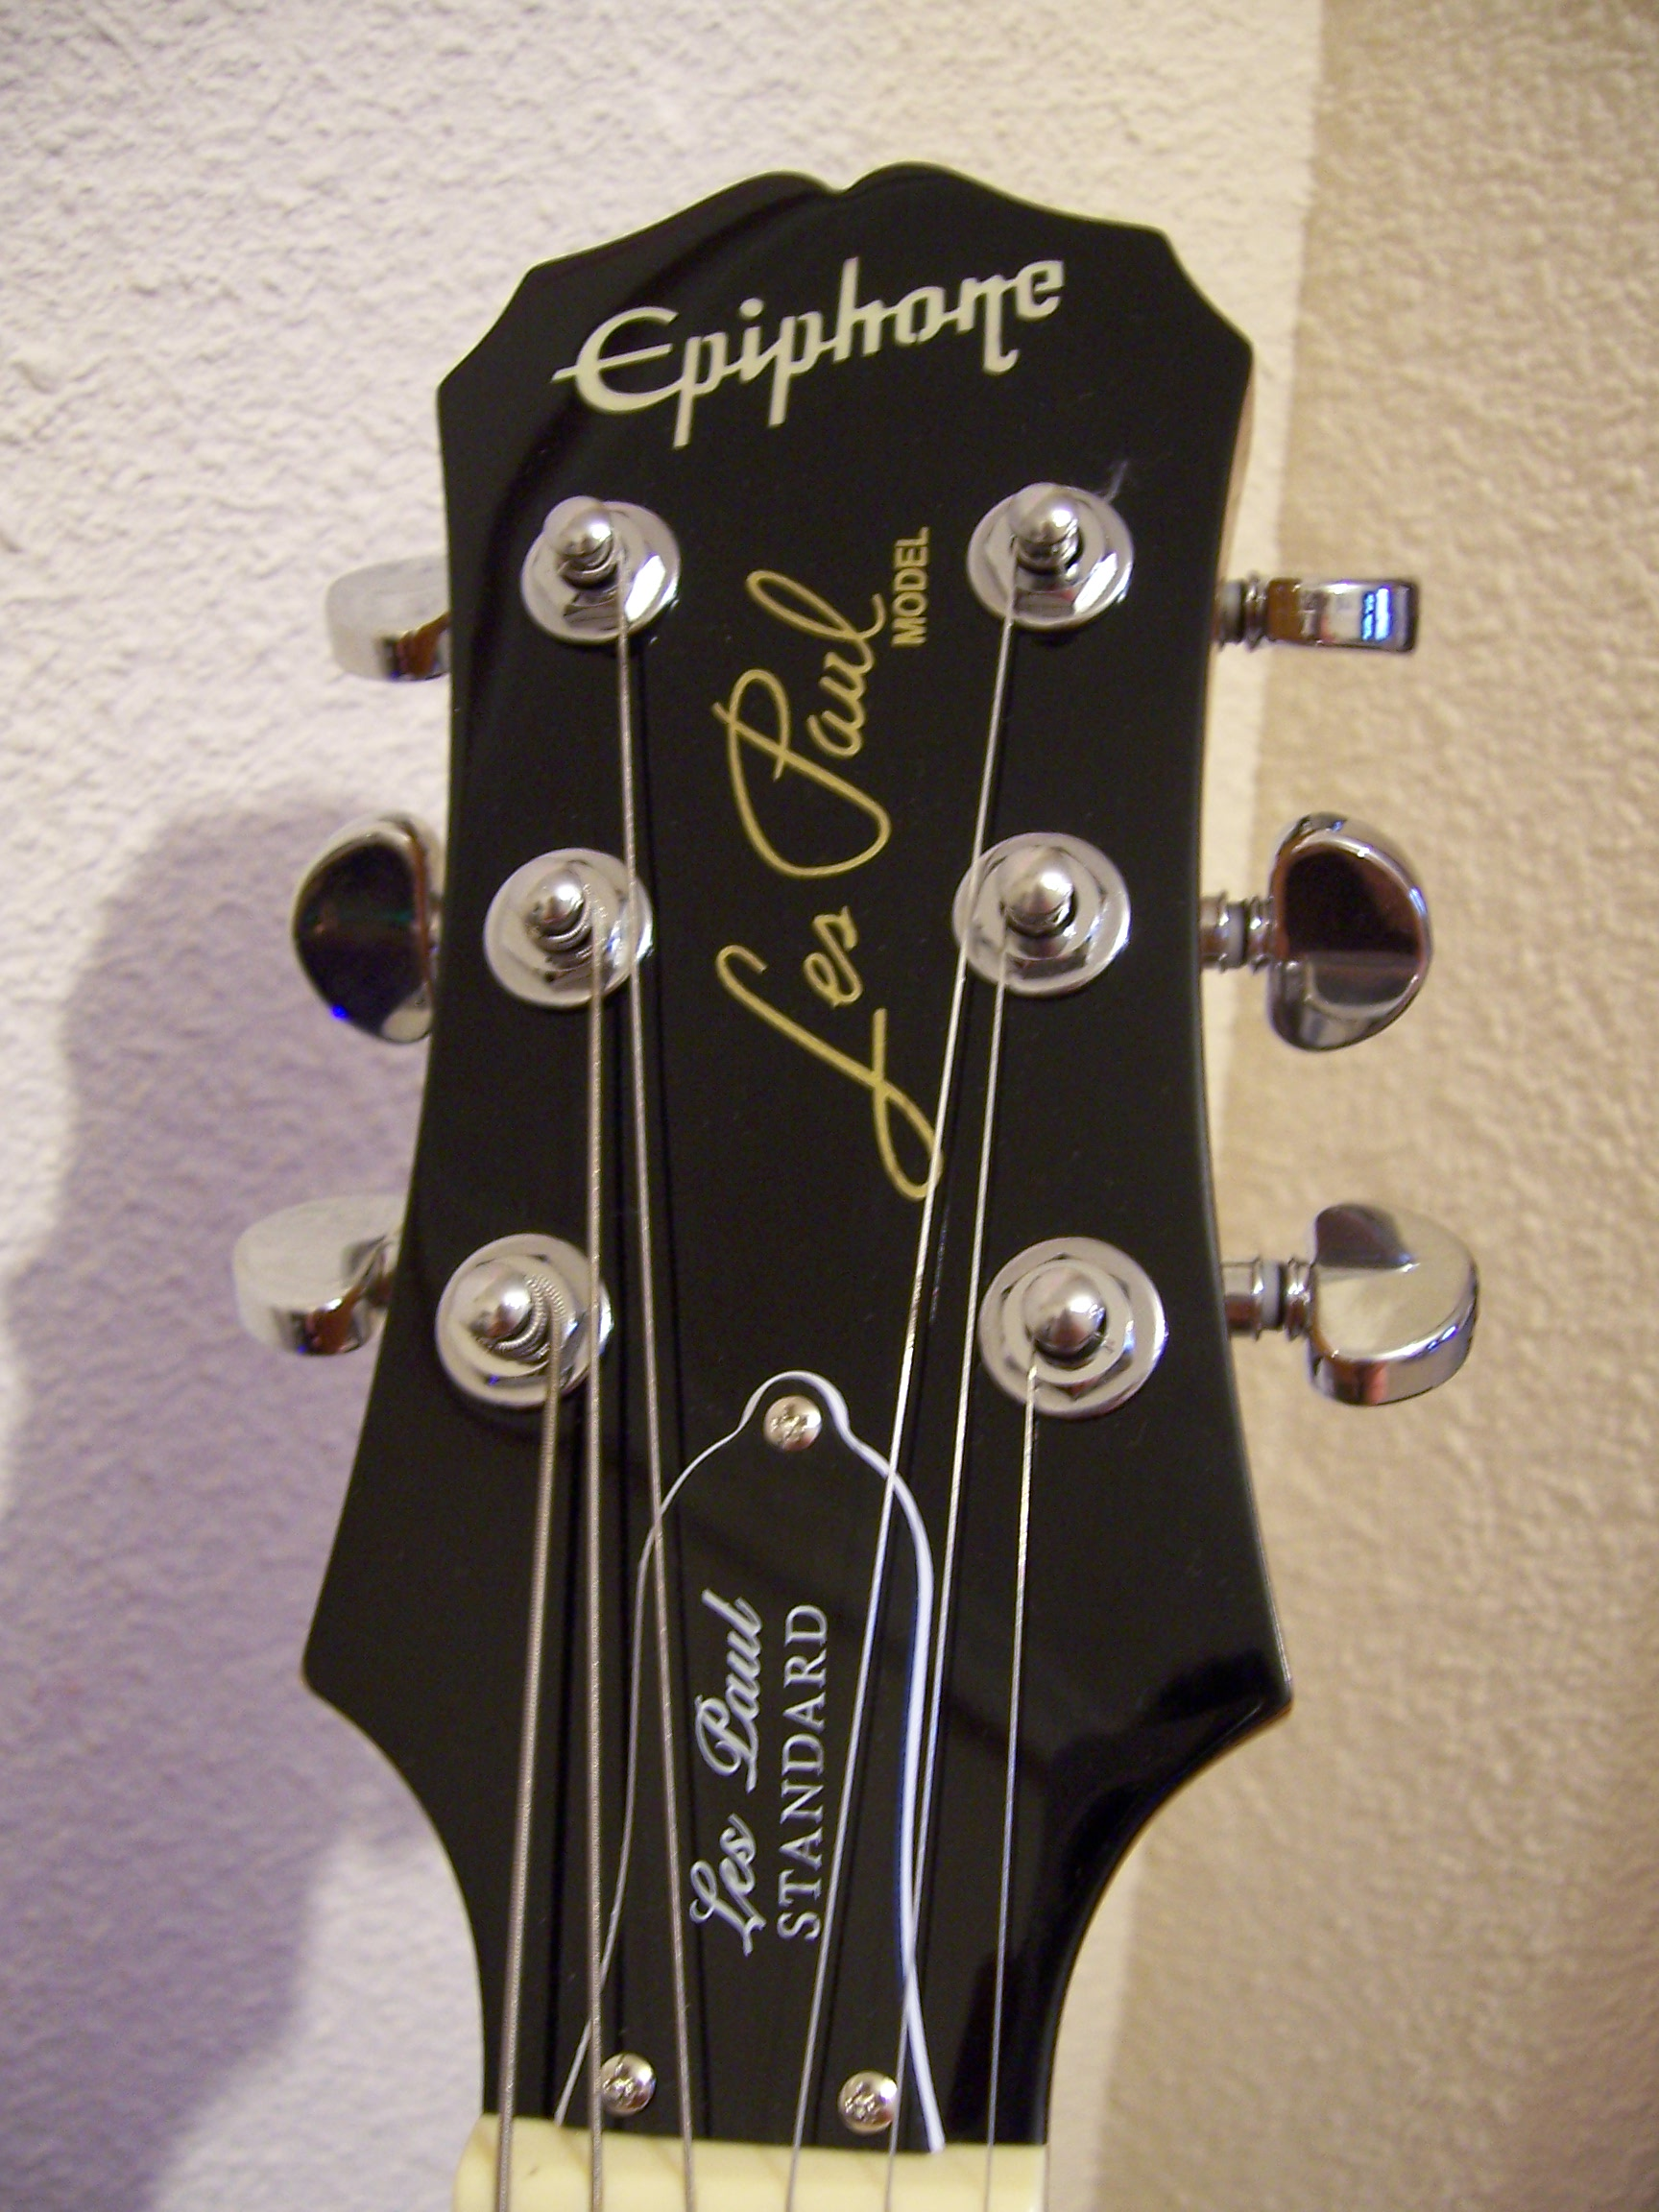 Epiphone (made in Indonesia)